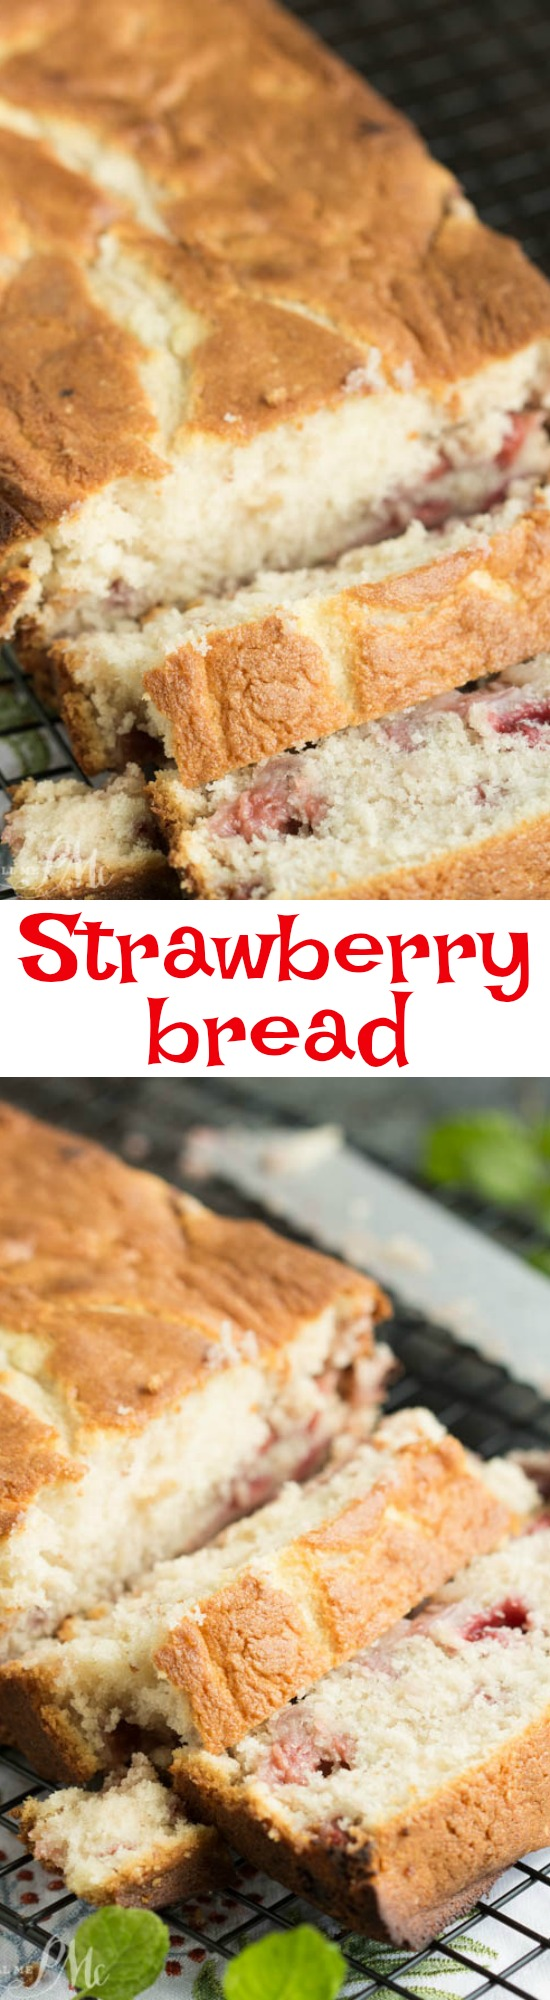 This easy Strawberry Bread is great for breakfast, after-school snack, or mid-morning snack with coffee! It's sweet and irresistibly tender.